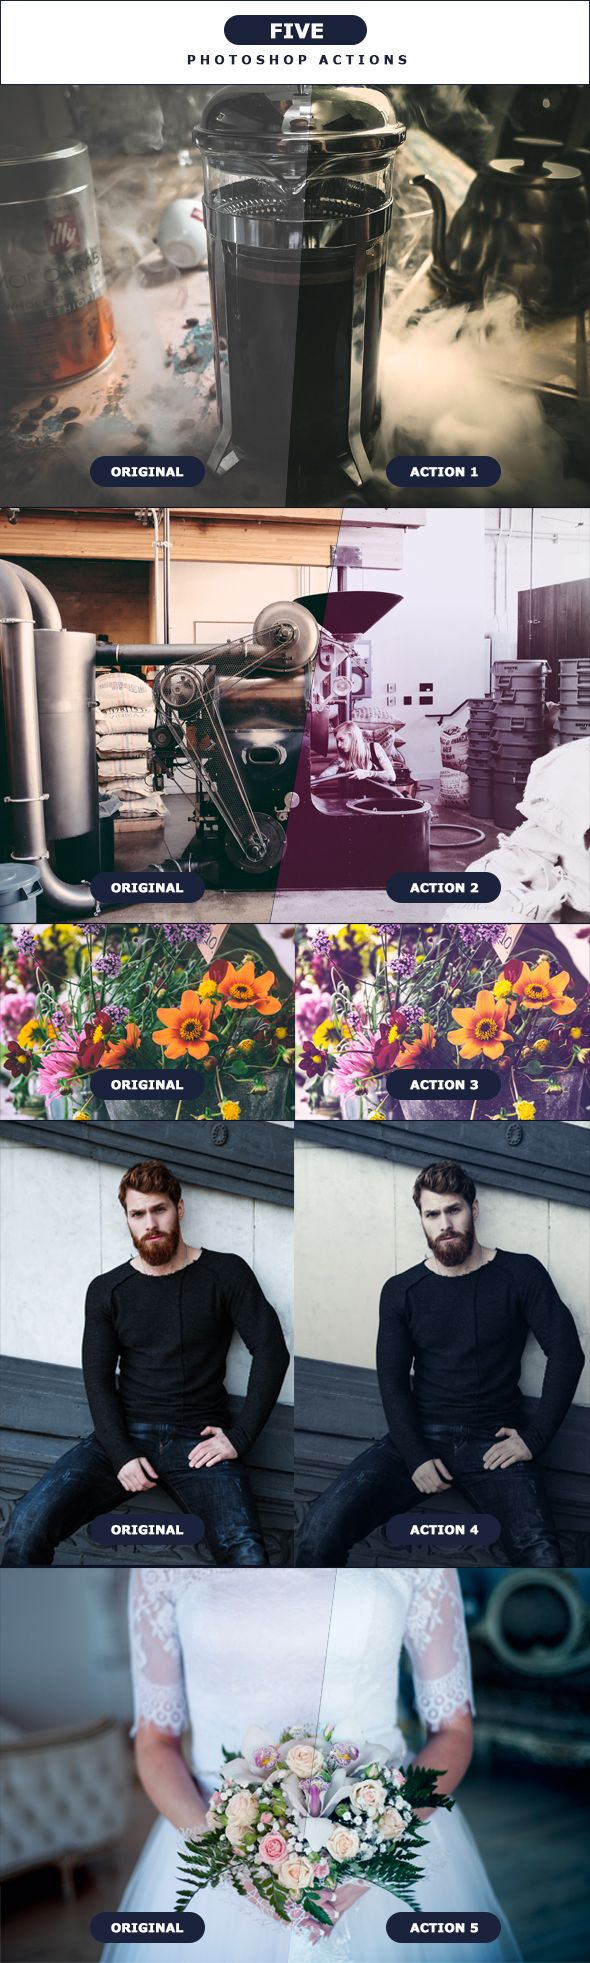 FIVE - Photoshop Actions 4 - Photo Effects Actions